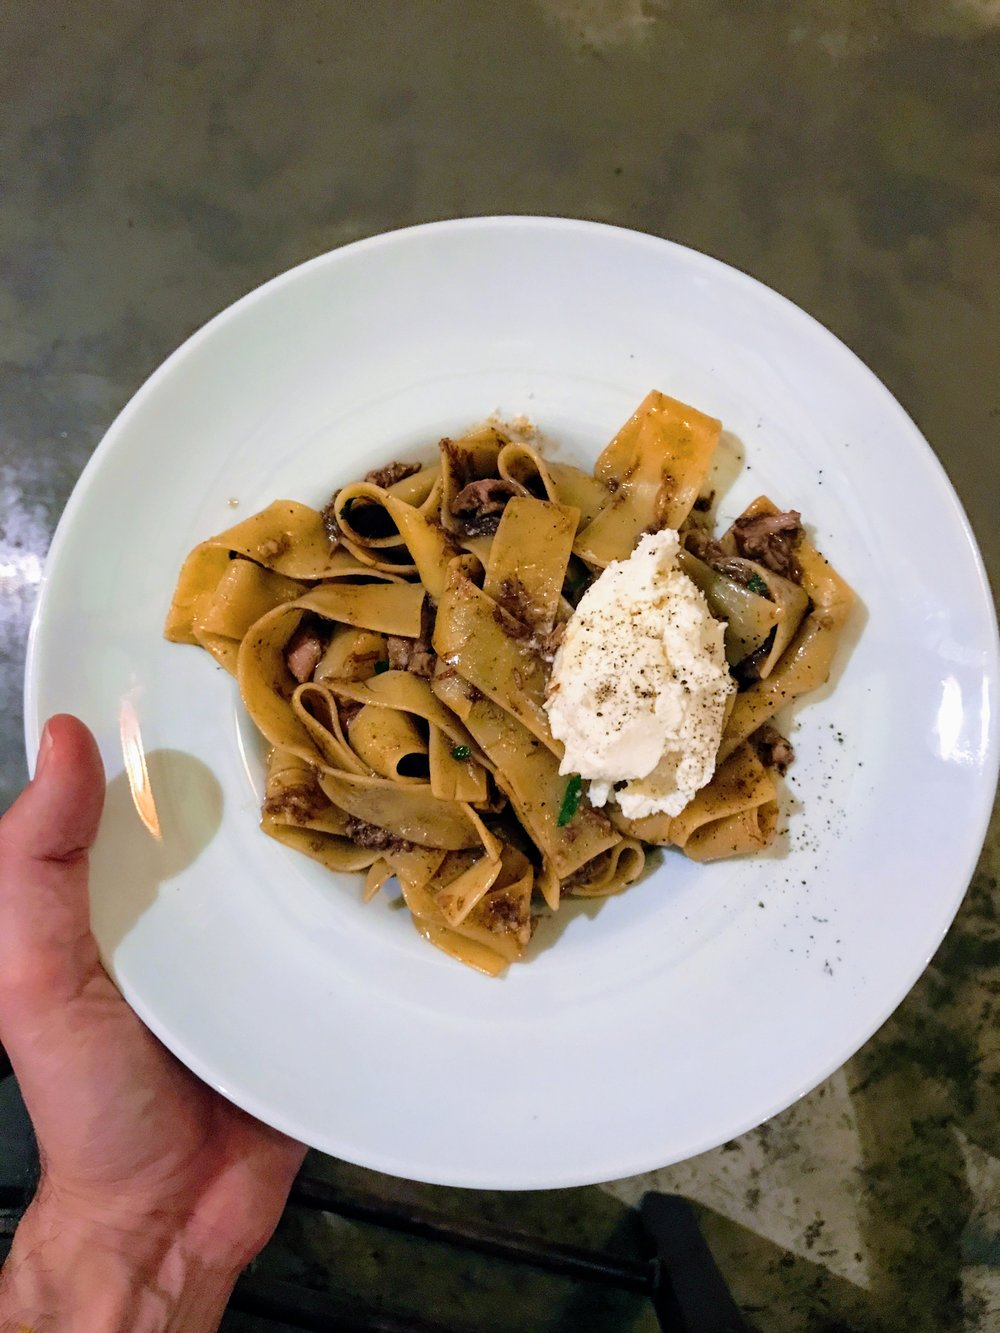 Their signature dish, Papardelle with lard